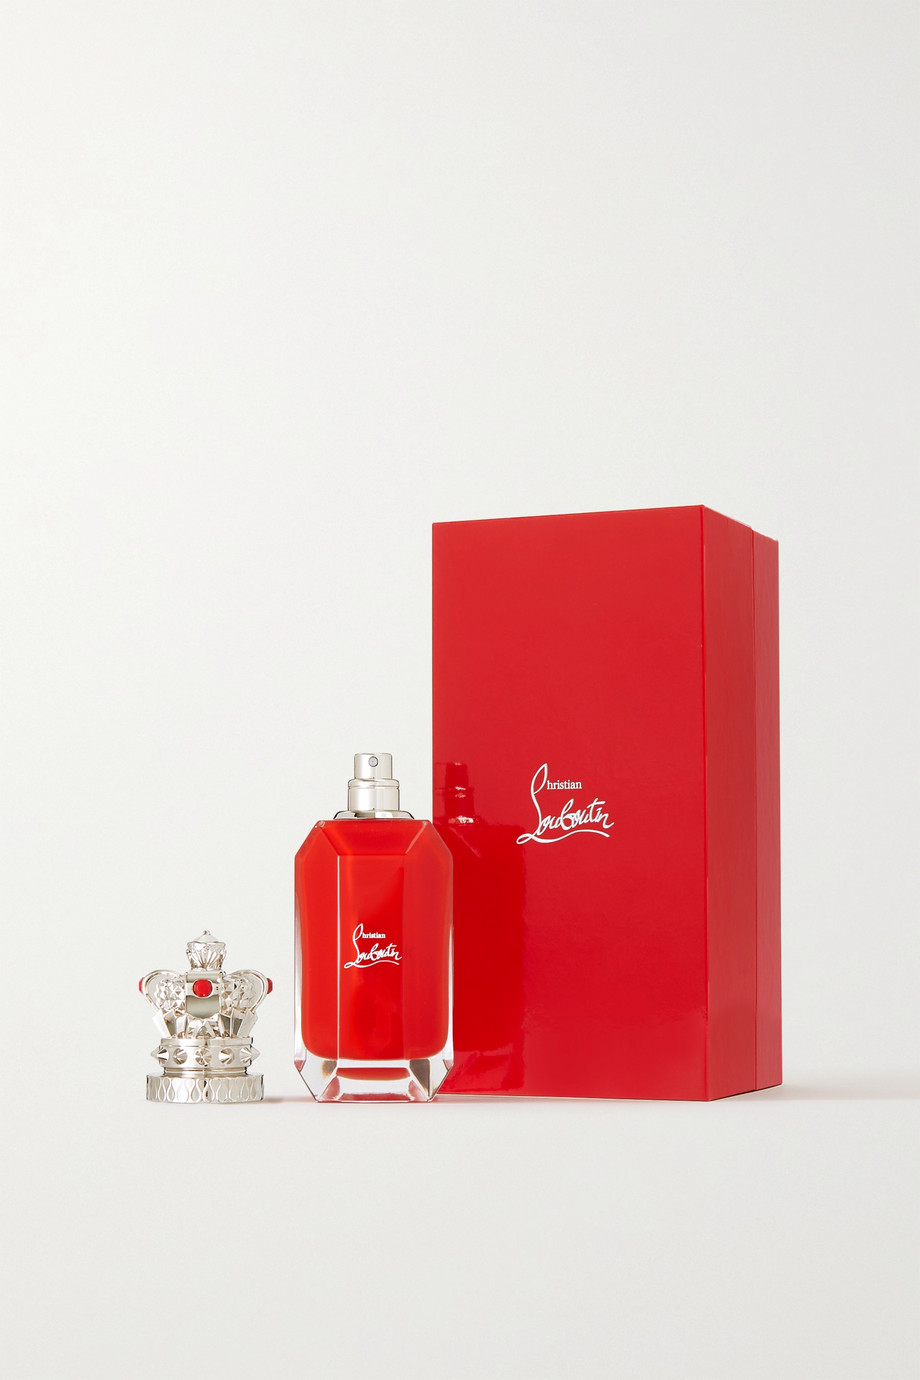 Christian Louboutin Beauty Eau de Parfum - Loubicrown, 90ml